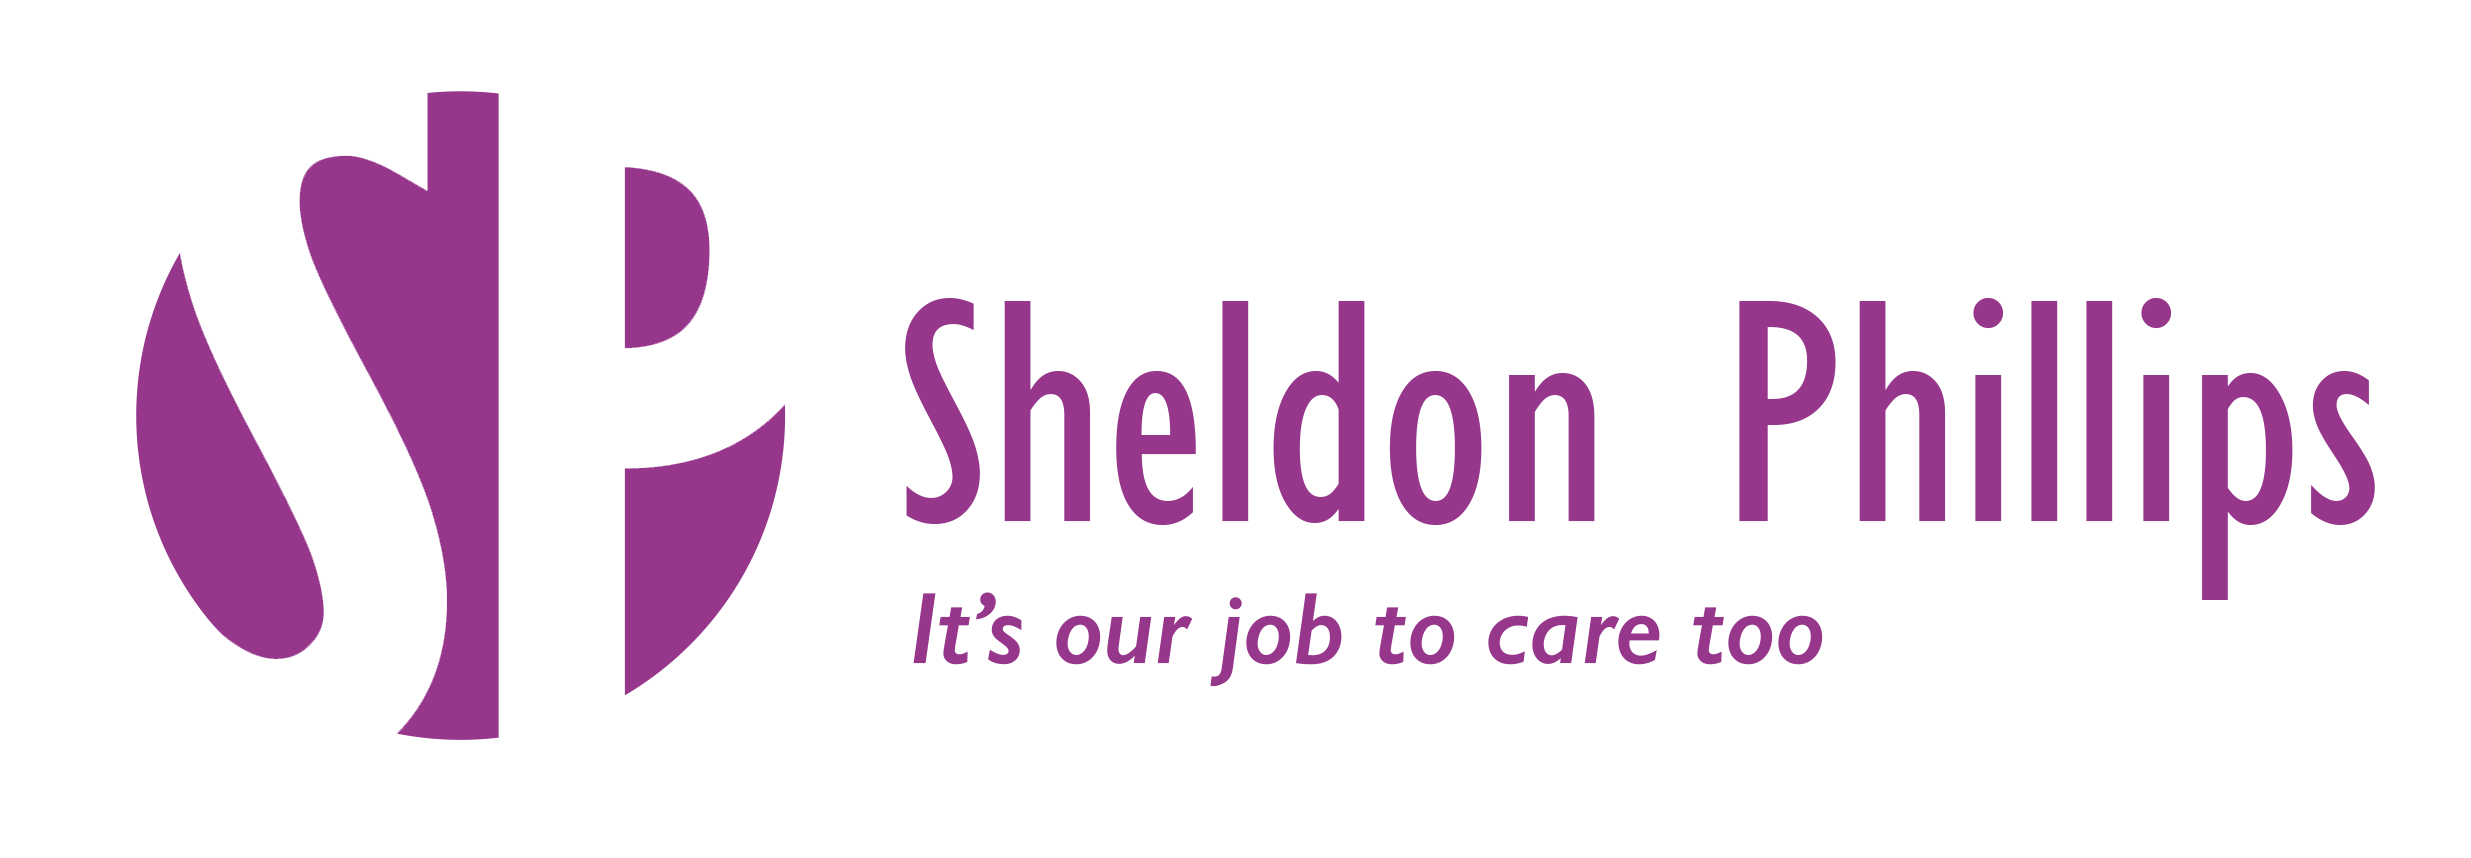 Sheldon Phillips logo